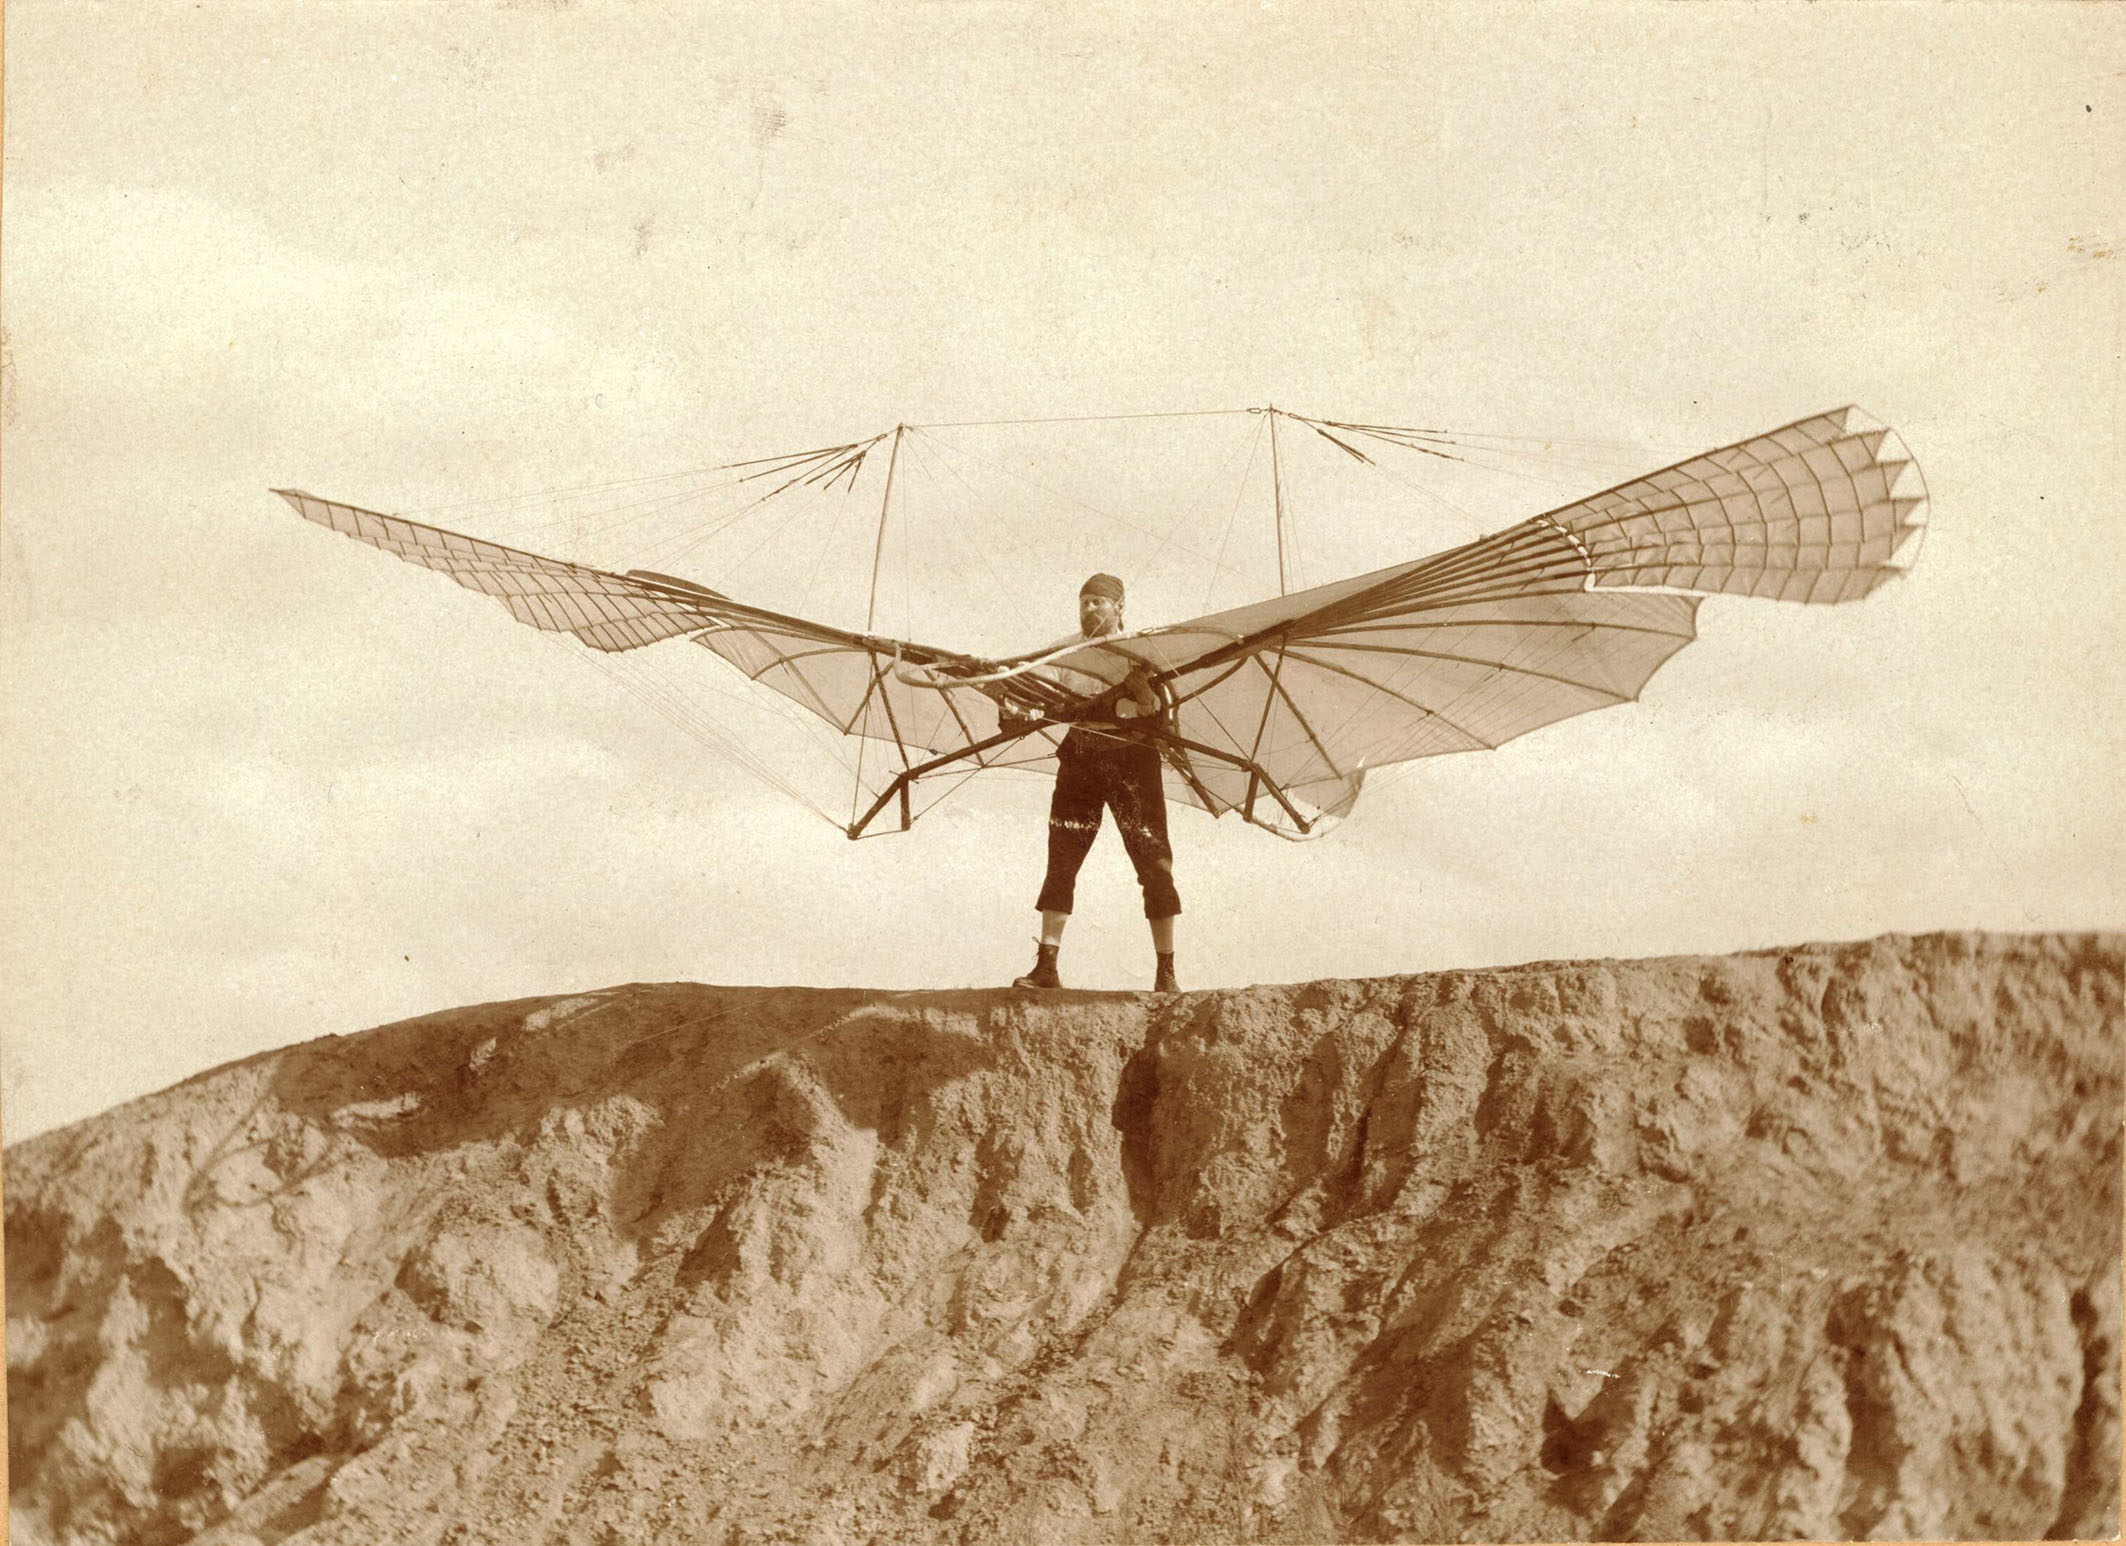 Quotes Otto Lilienthal Archiv Otto-lilienthal-museum